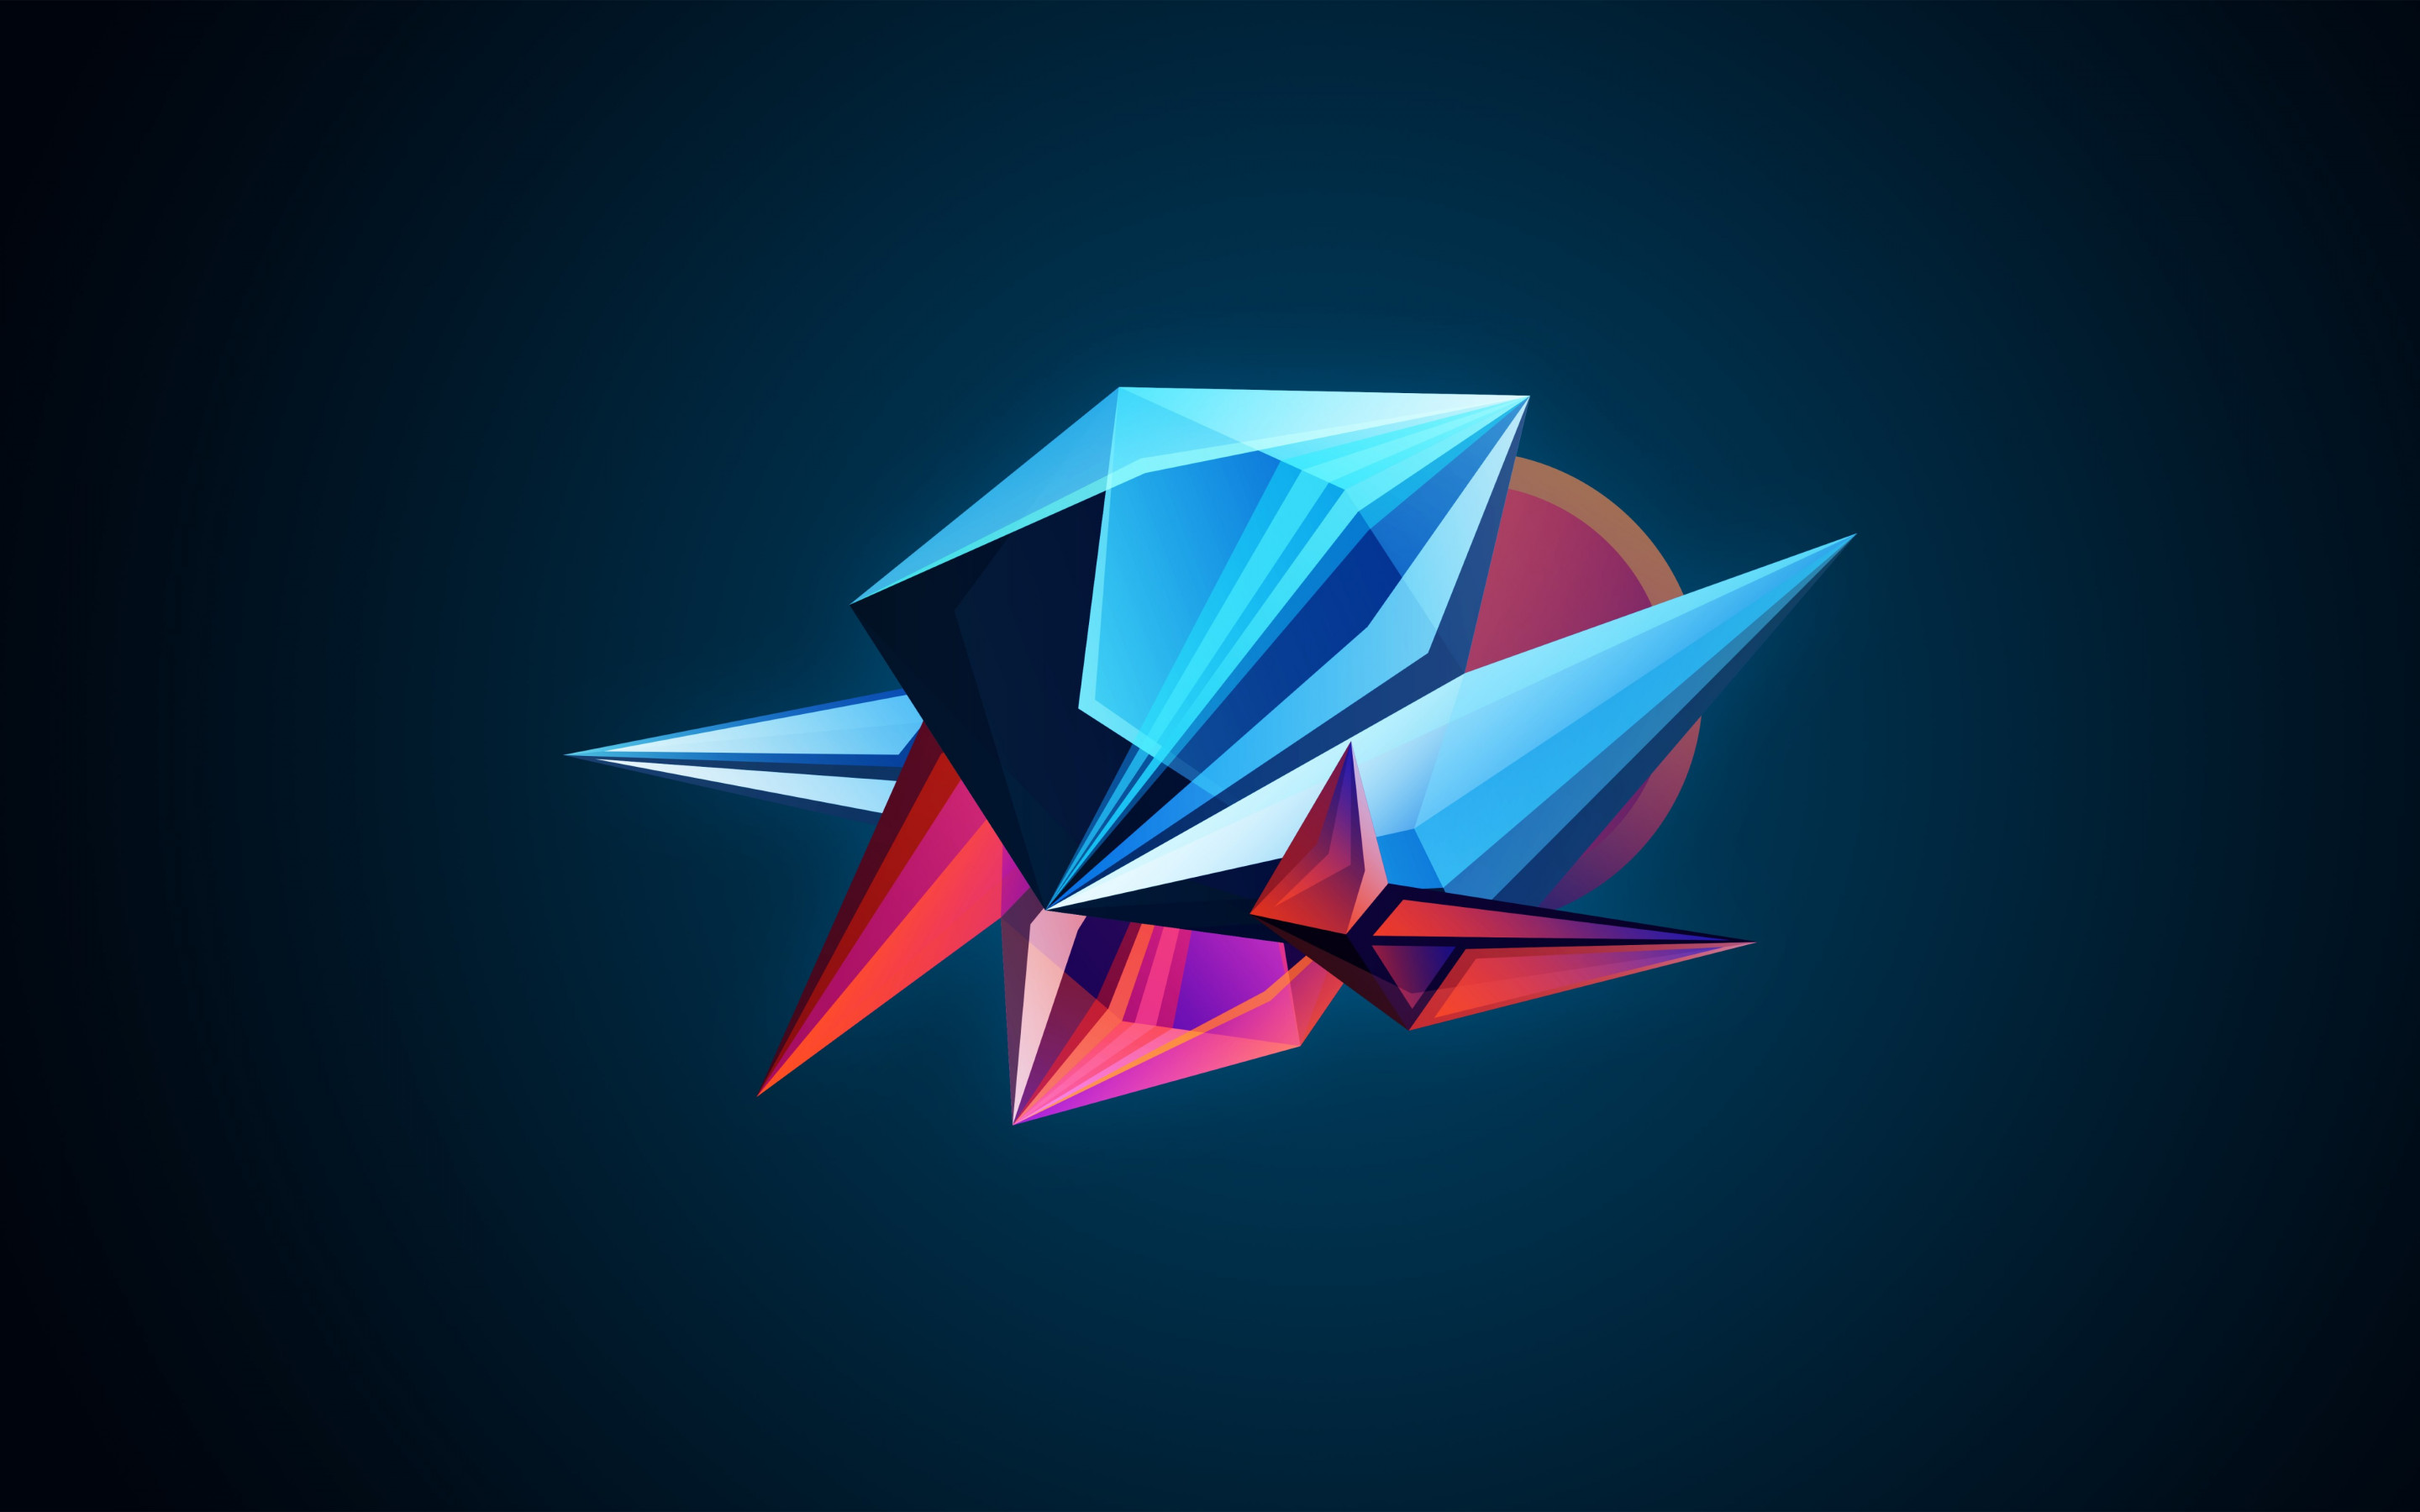 Abstract 3D shapes wallpaper 2880x1800